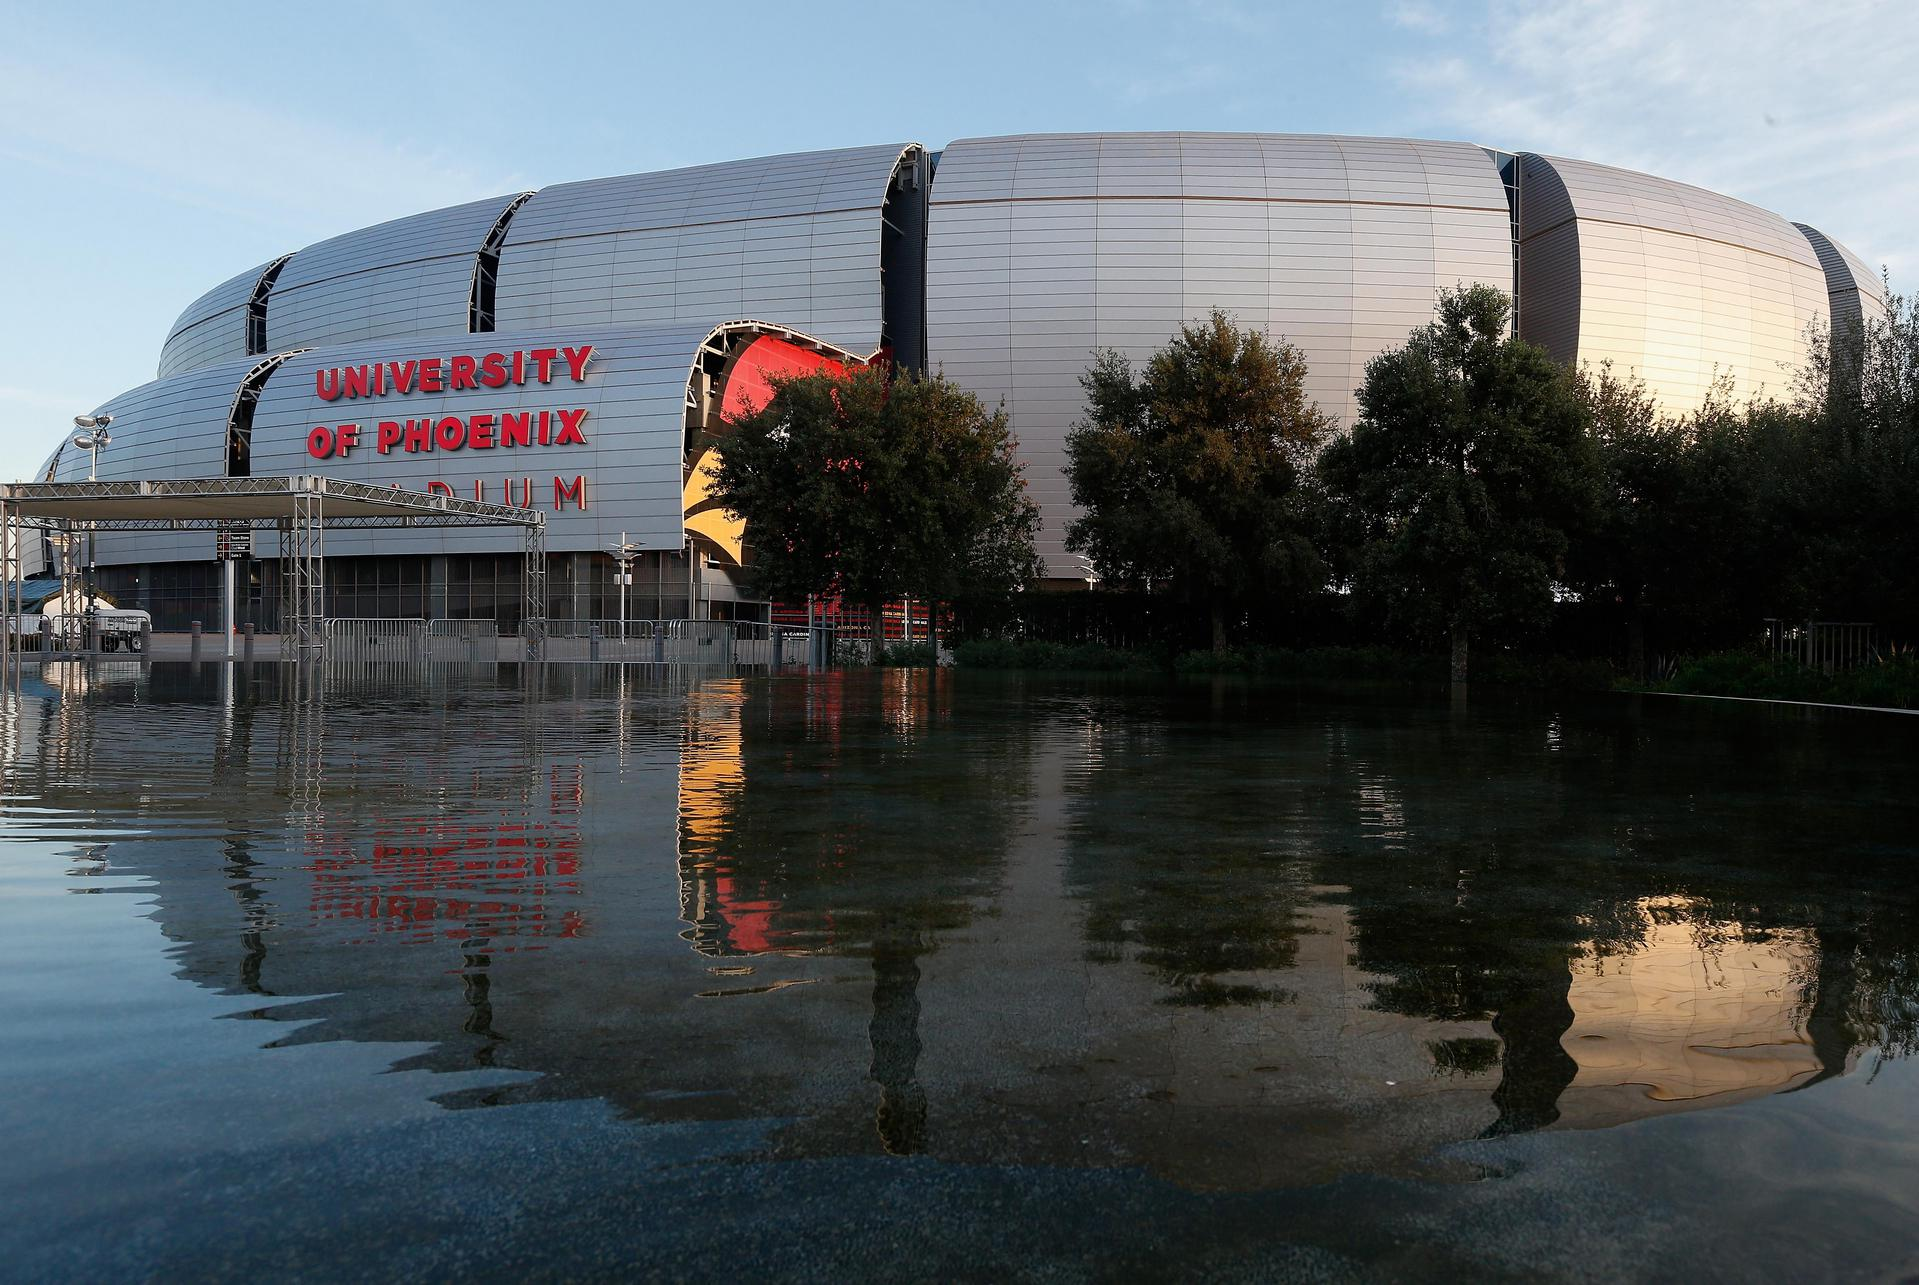 A general view of the University of Phoenix Stadium in Glendale, Arizona